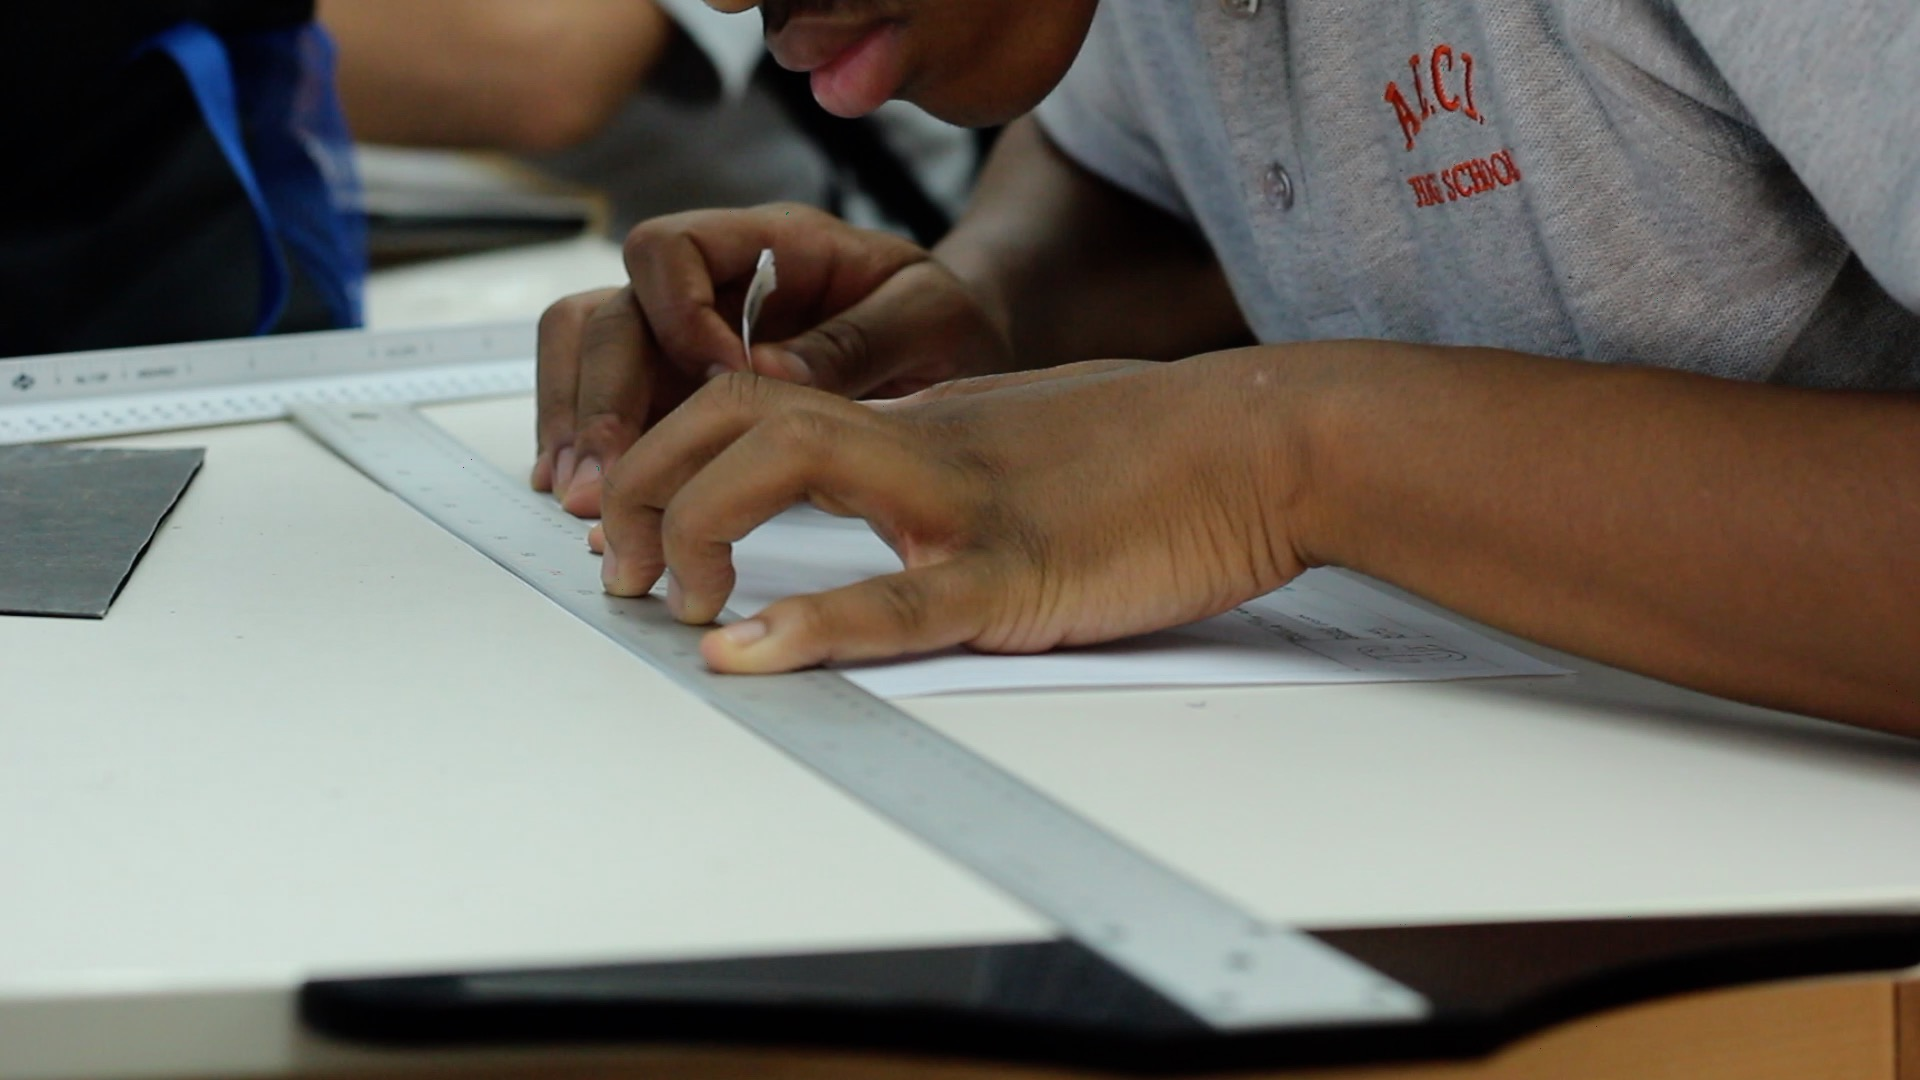 The hands of an A.E.C.I. high school student at work at a drawing table